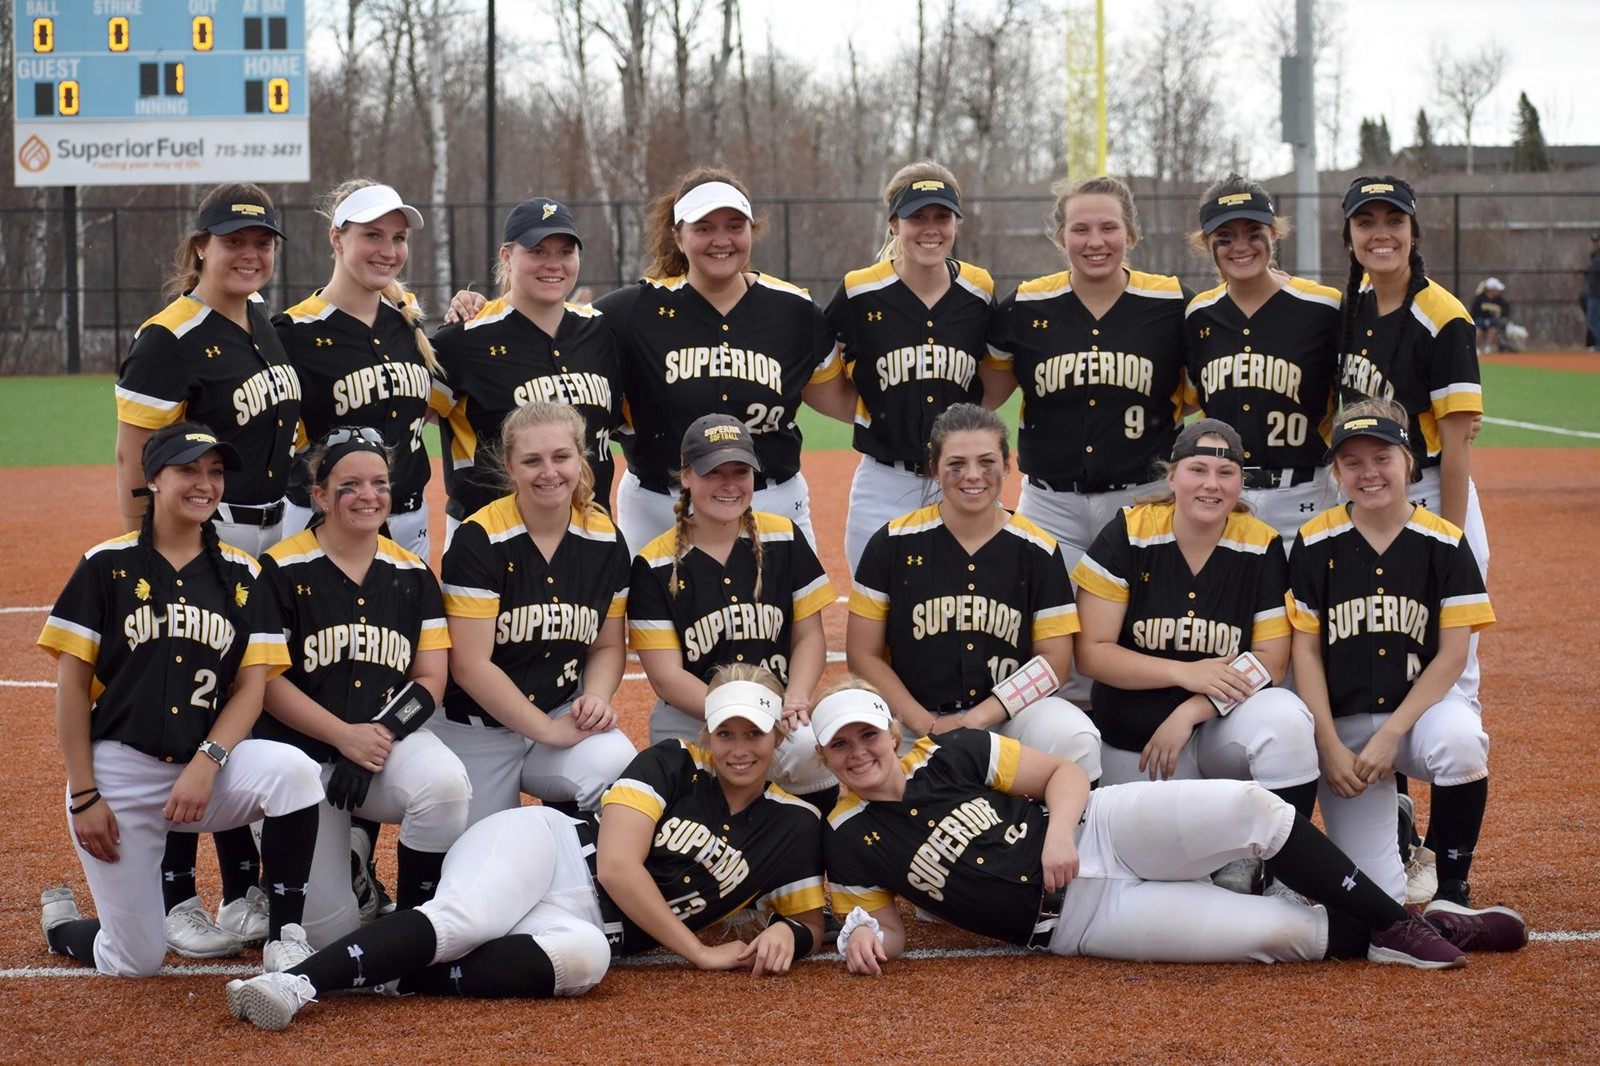 2019 Softball Roster - University of Wisconsin-Superior Athletics